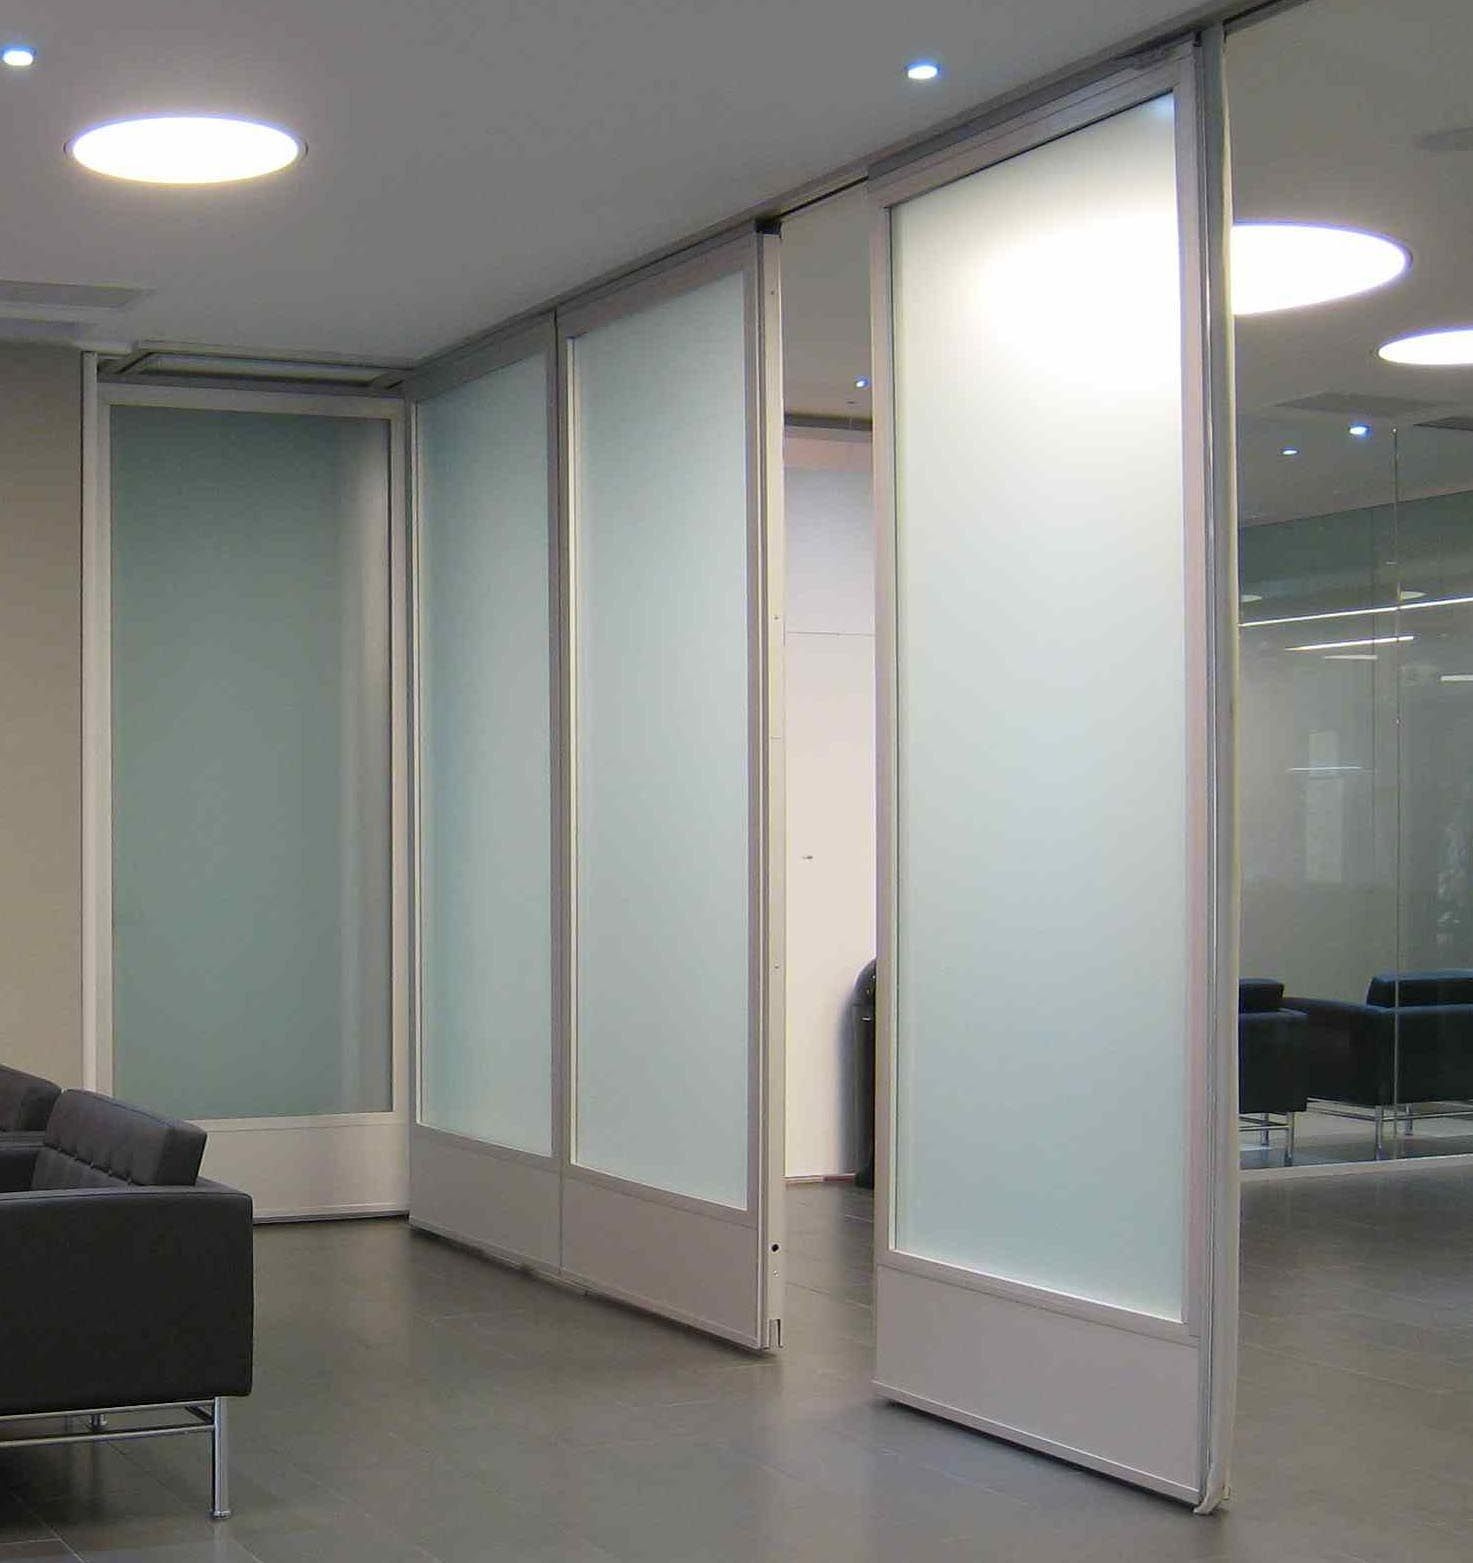 Residential Accordion Room Dividers Glass Room Divider Room Divider Walls Modern Room Divider